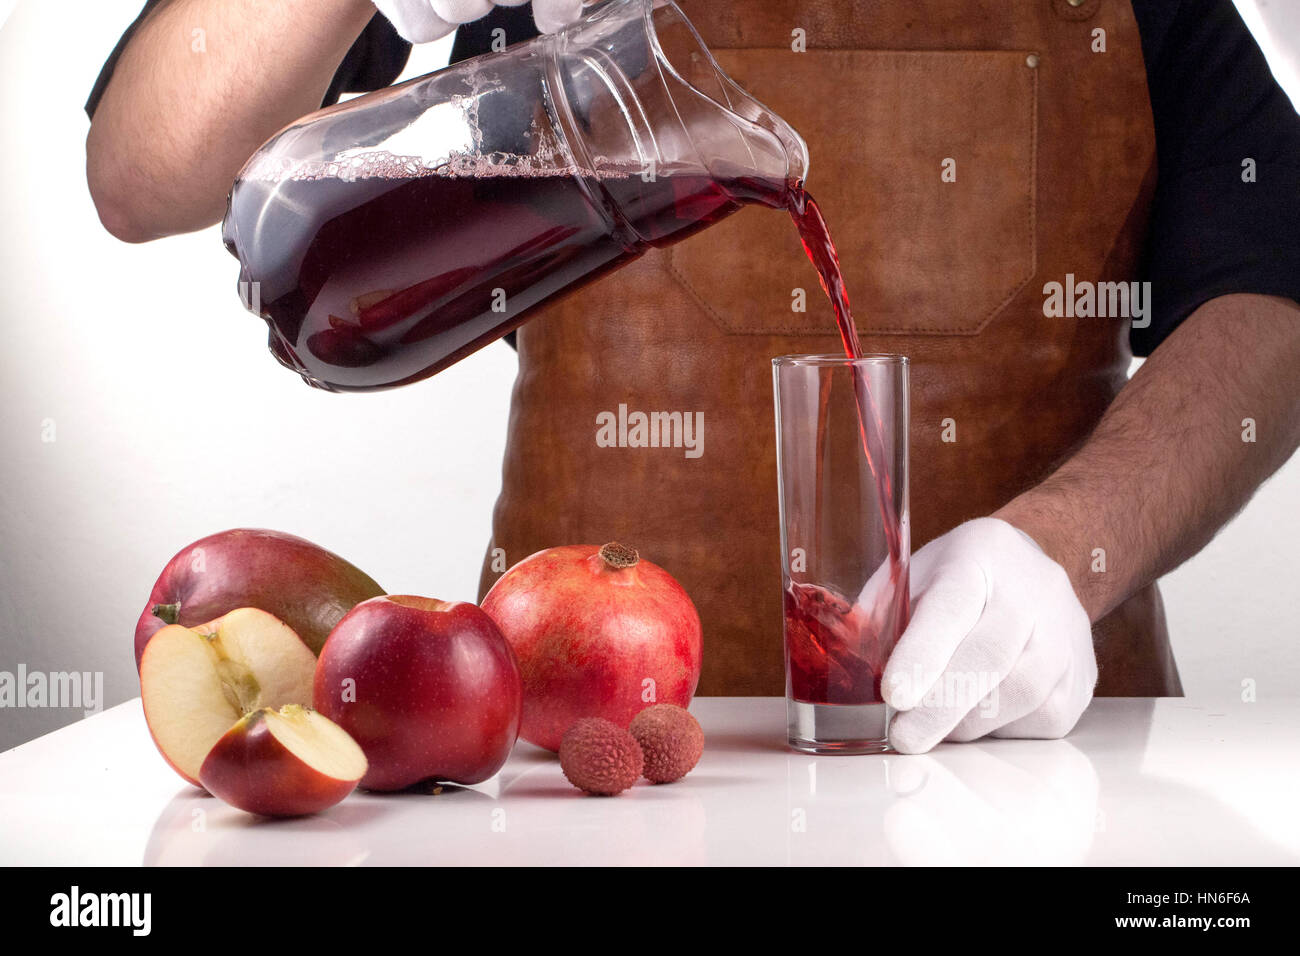 man pouring juice into a glass composition of red fruits on a